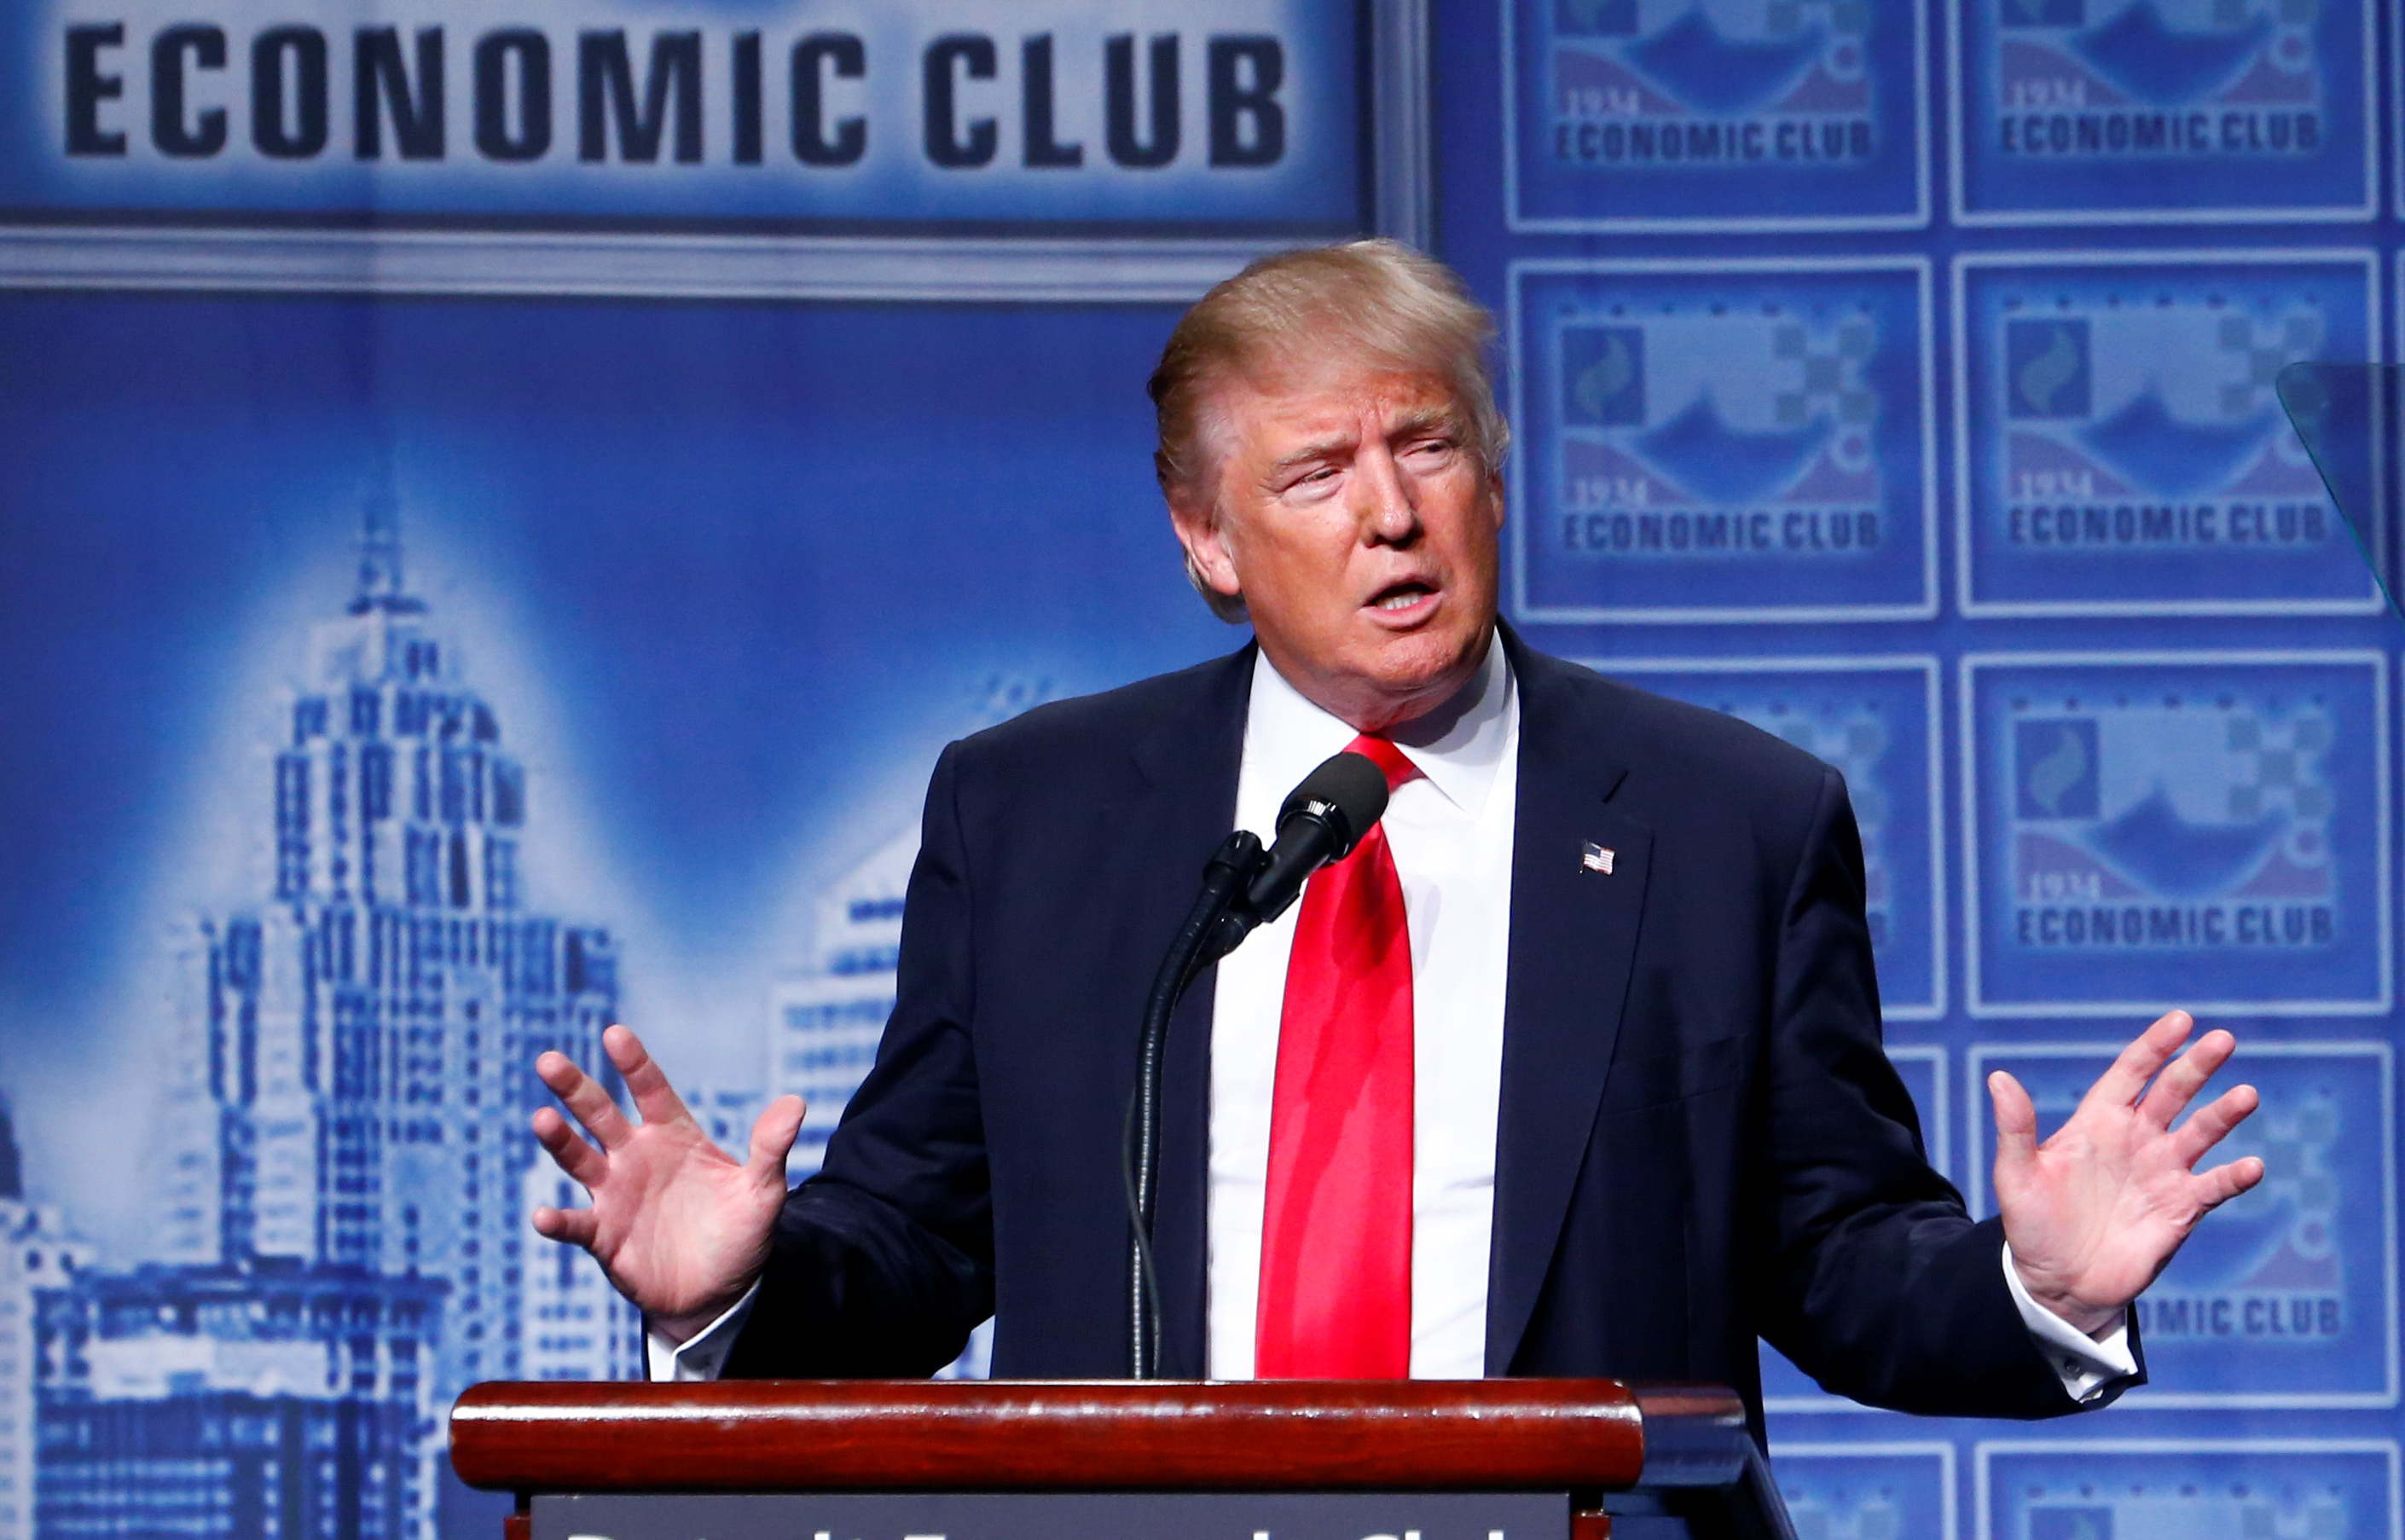 Republican U.S. presidential nominee Donald Trump speaks to the Detroit Economic Club at the Cobo Center in Detroit, Michigan August 8, 2016. REUTERS/Eric Thayer